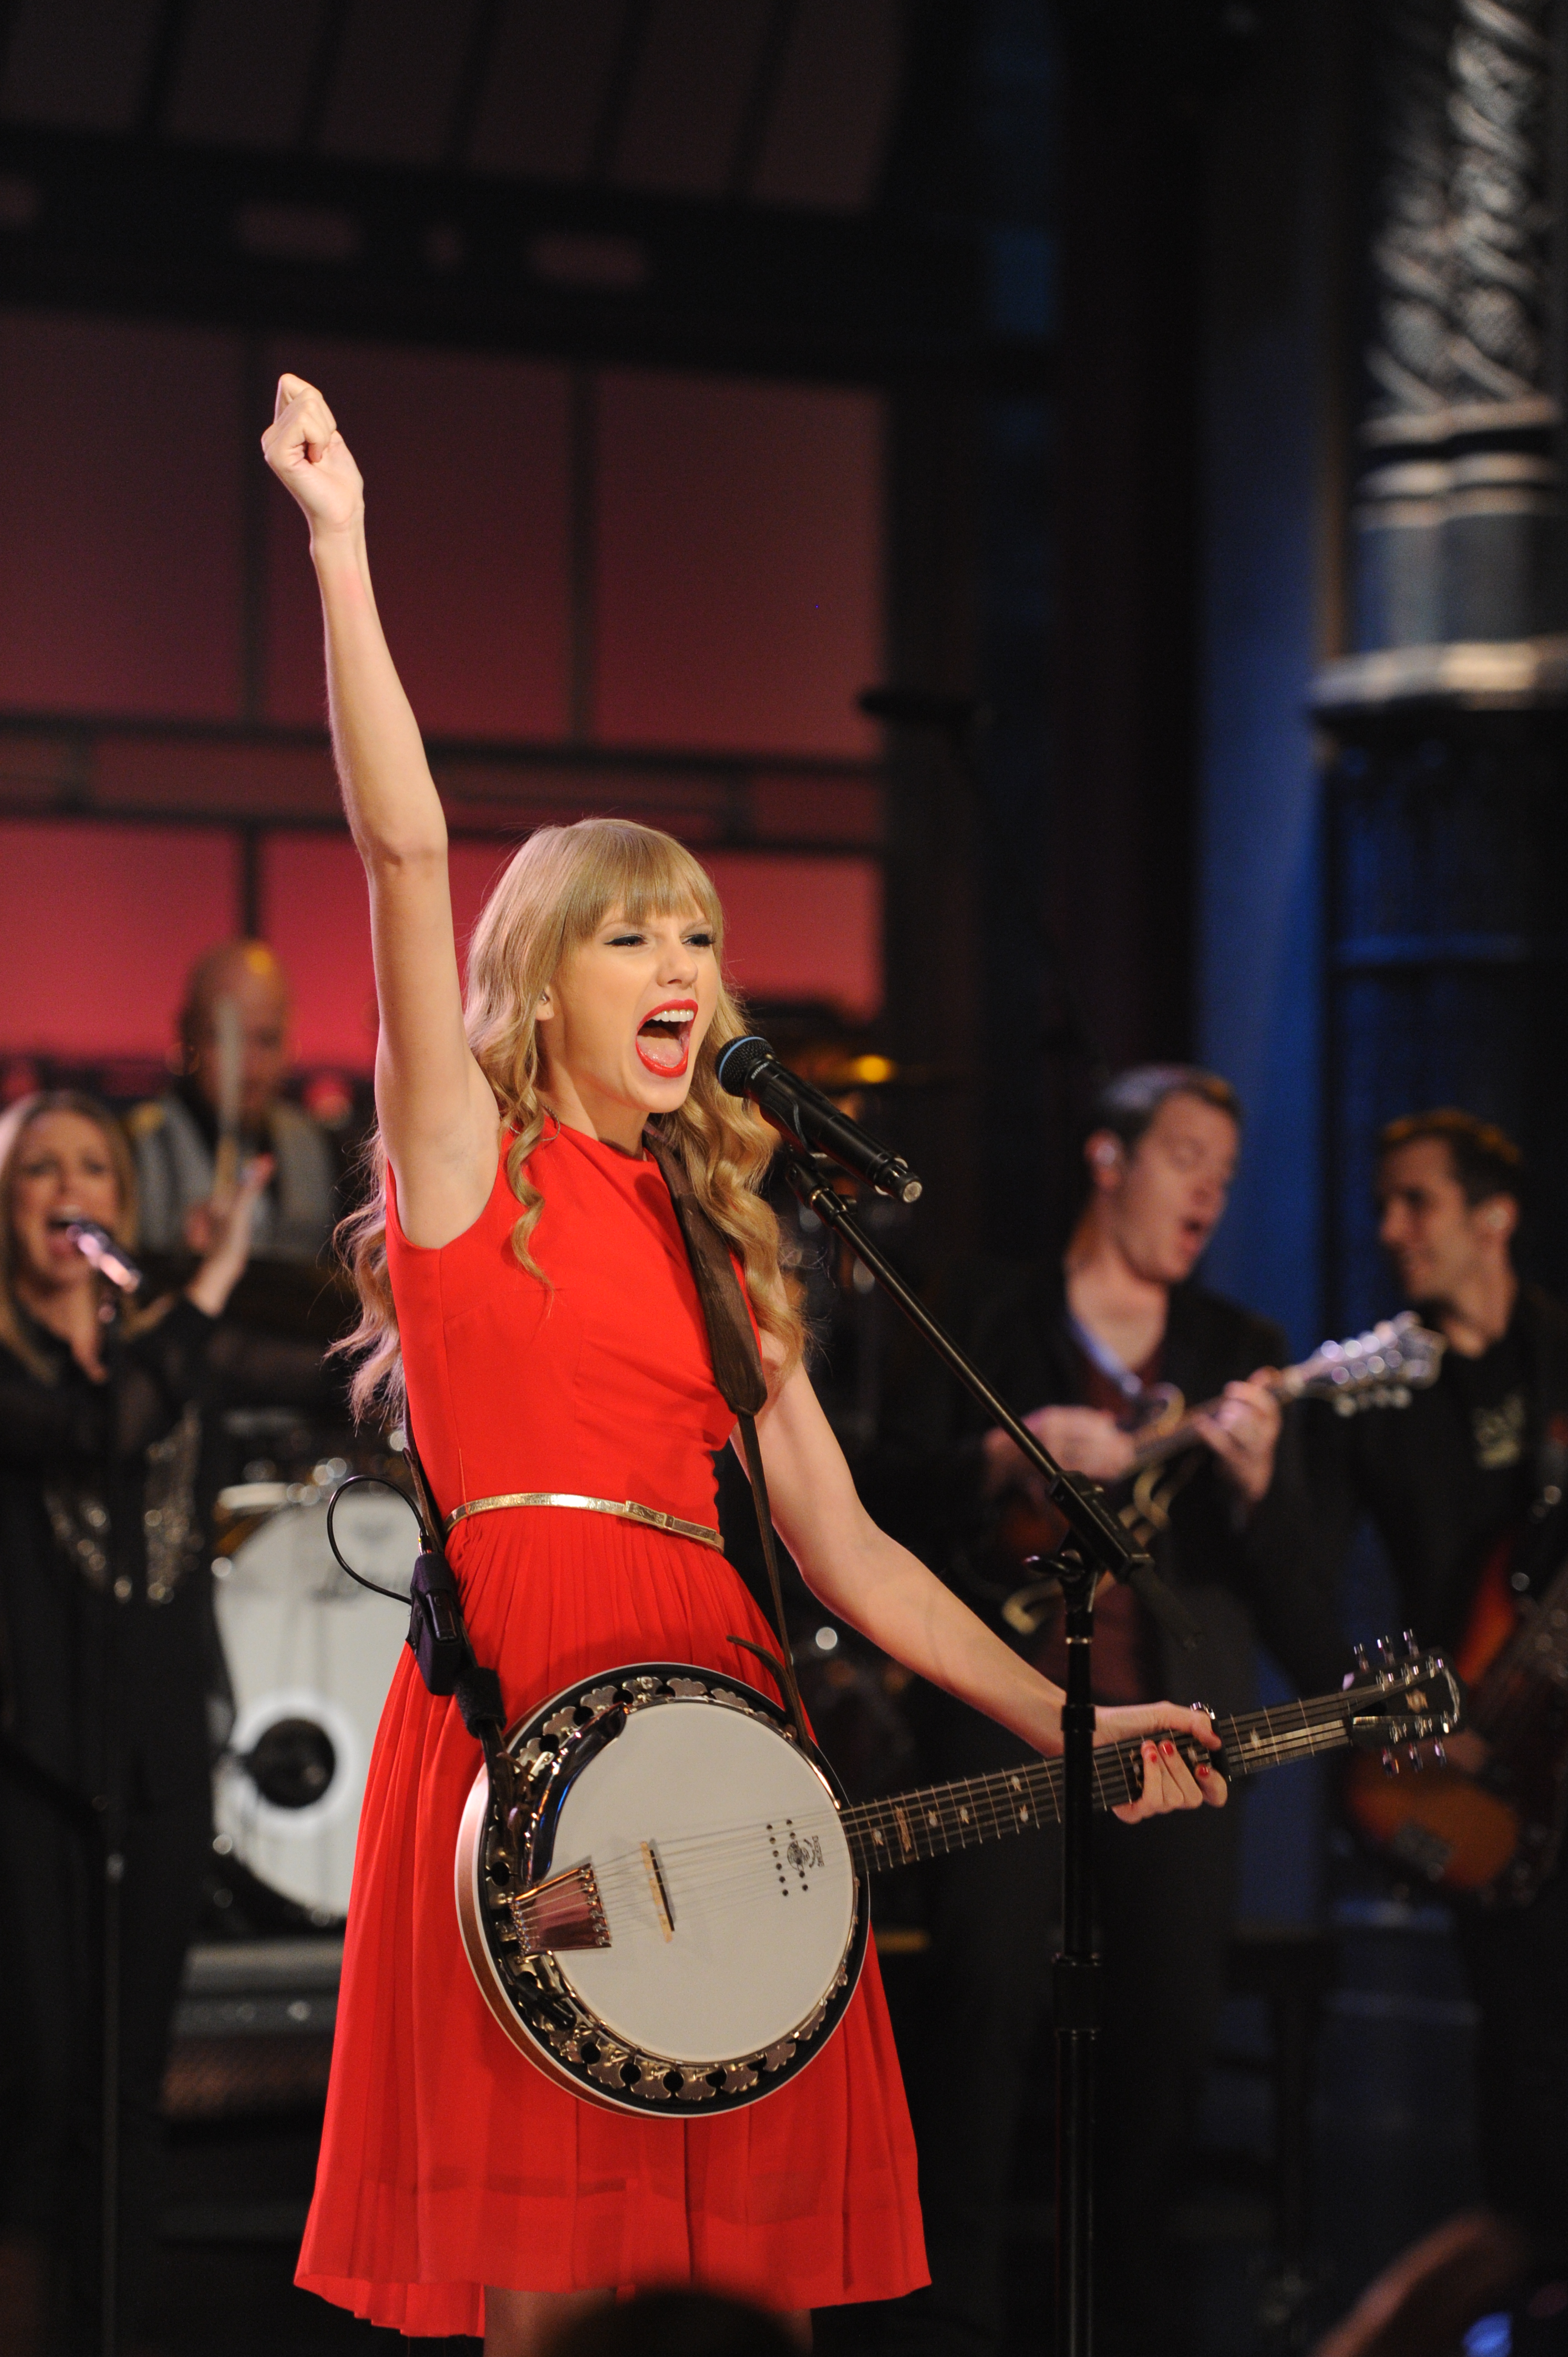 Taylor Swift at the Ed Sullivan Theater in New York